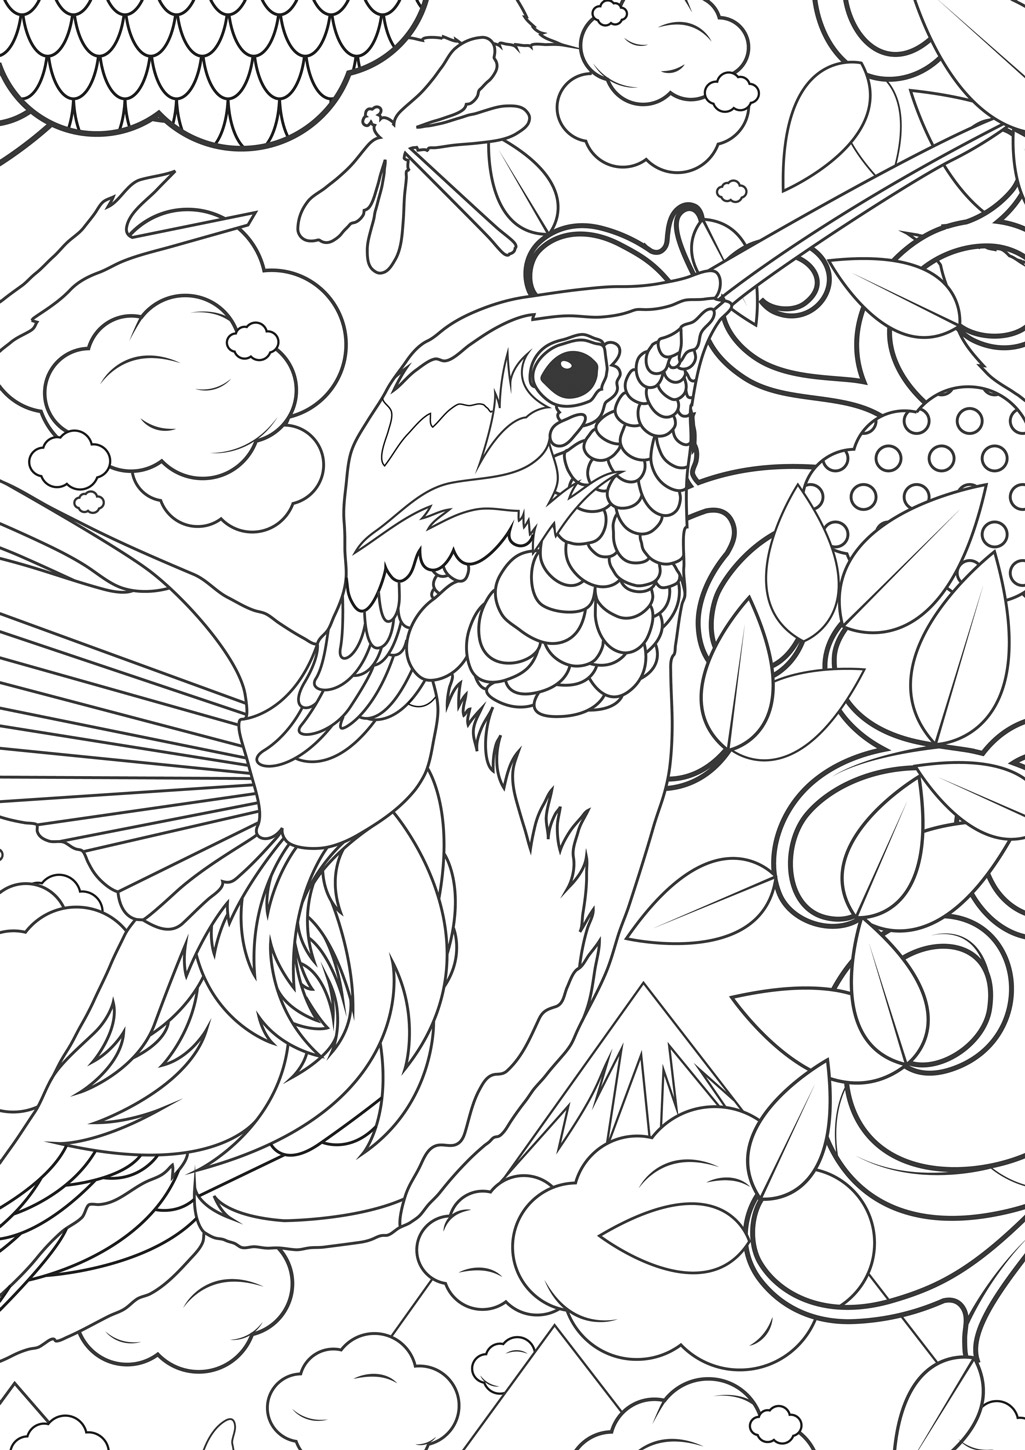 Flower difficult - Flowers Adult Coloring Pages | 1450x1025